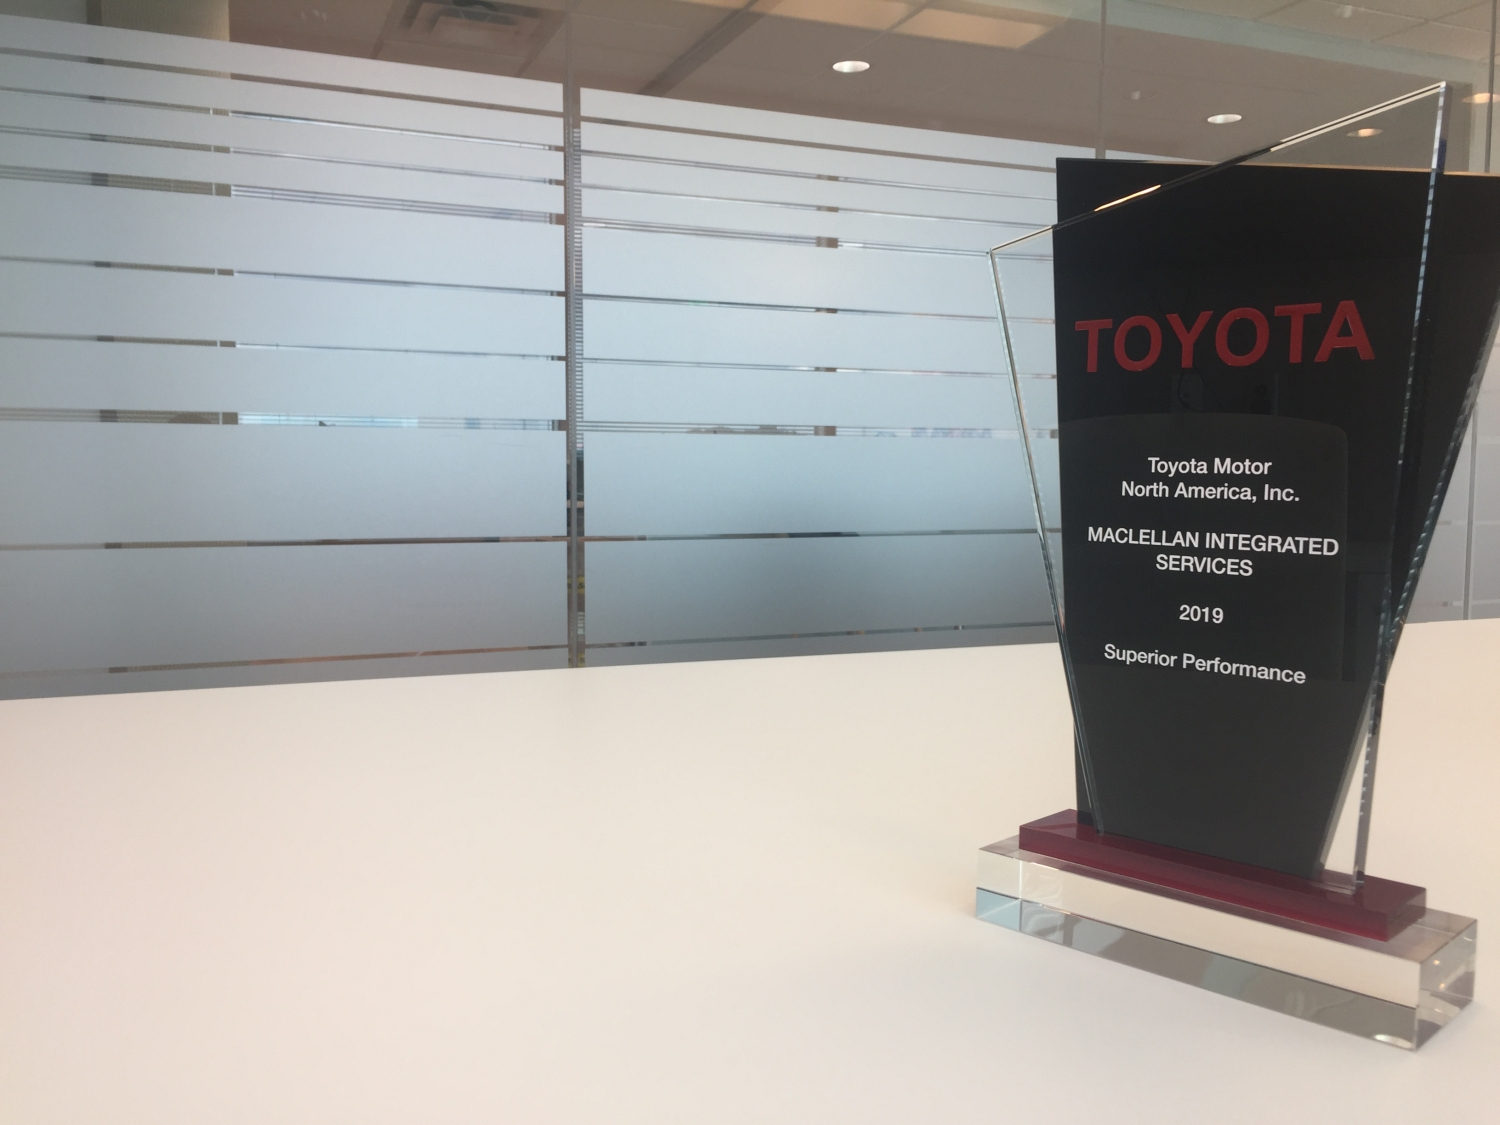 Toyota Superior Supplier Award